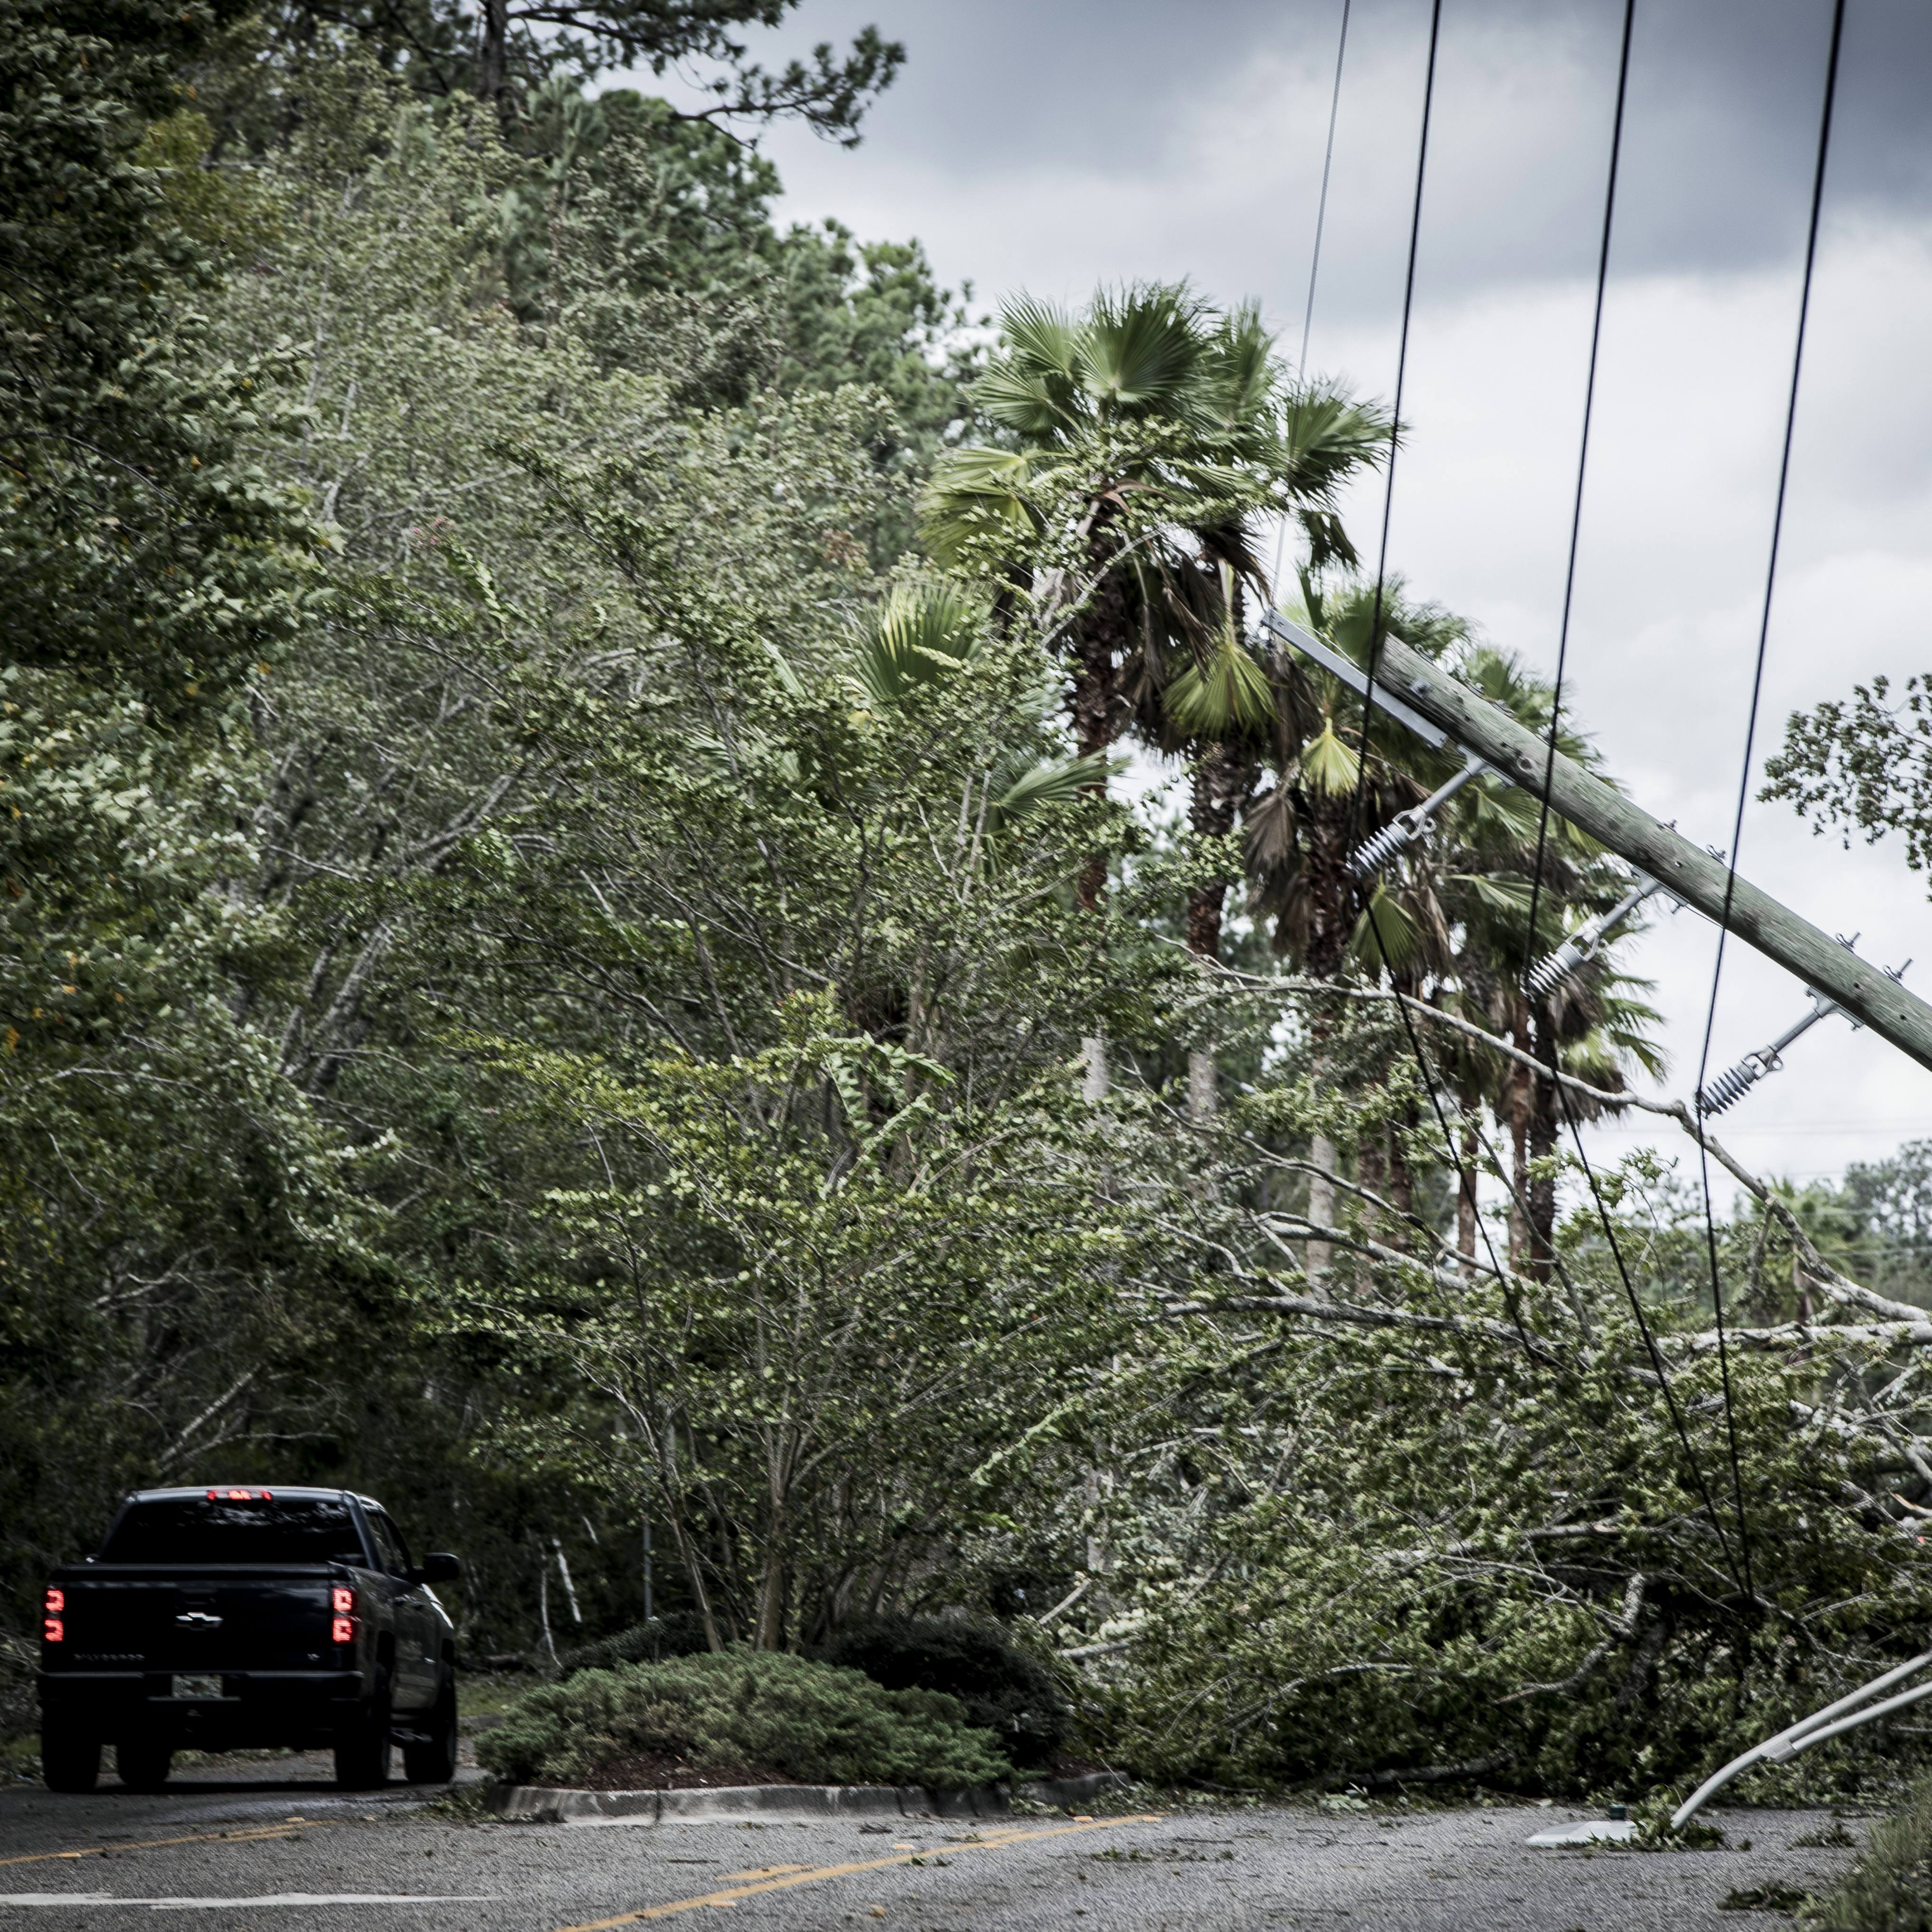 Vehicles navigate around downed trees and power lines on a road in Florida following hurricane Irma.